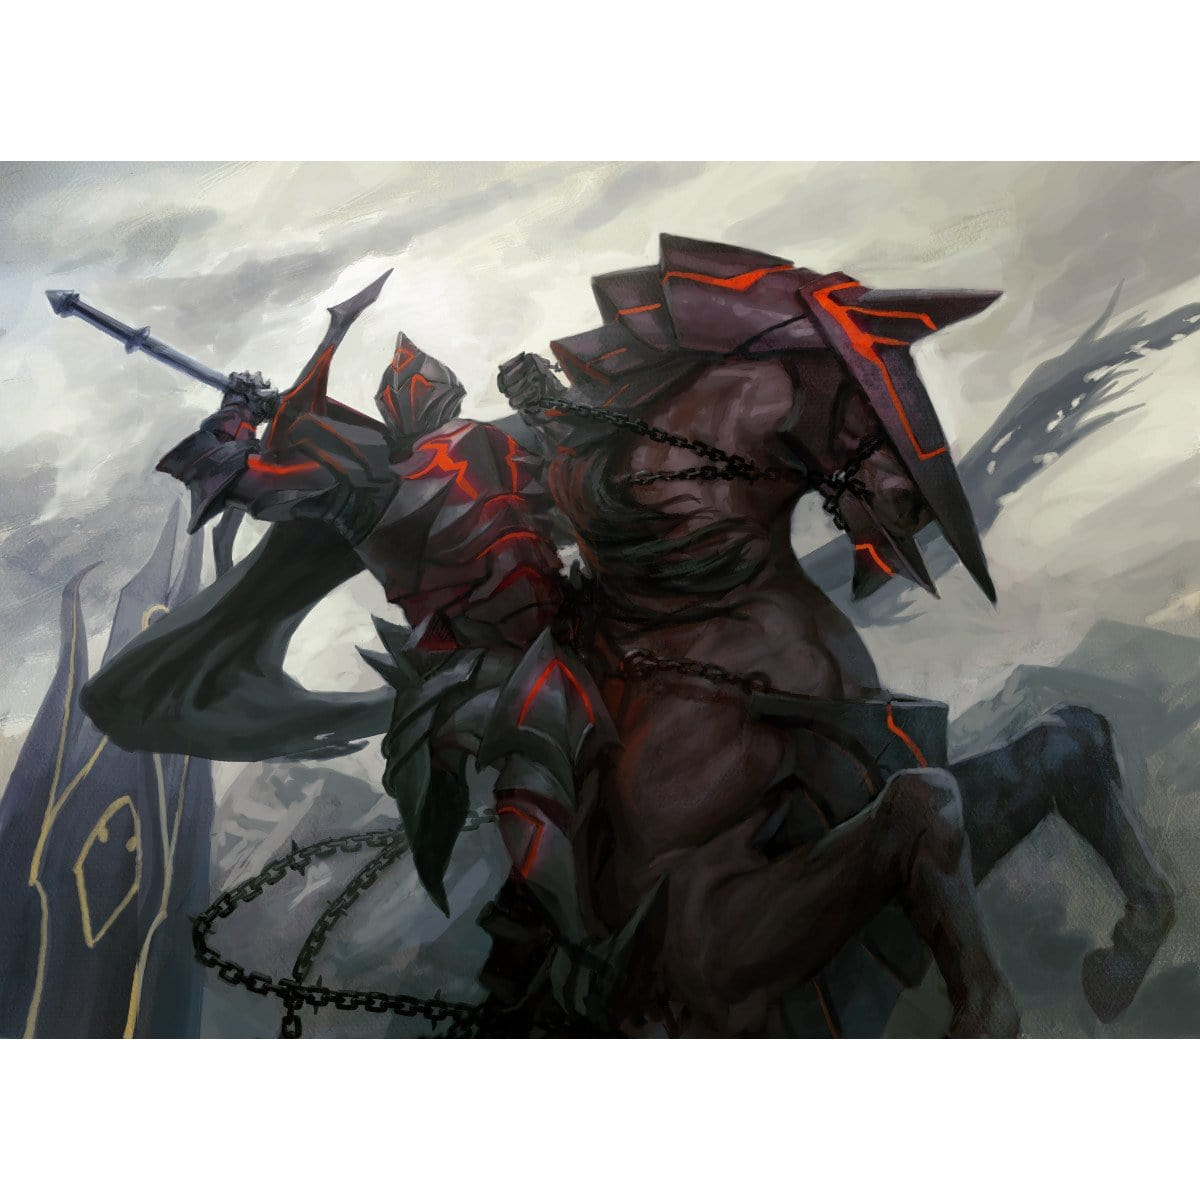 Knight of Infamy Print - Print - Original Magic Art - Accessories for Magic the Gathering and other card games